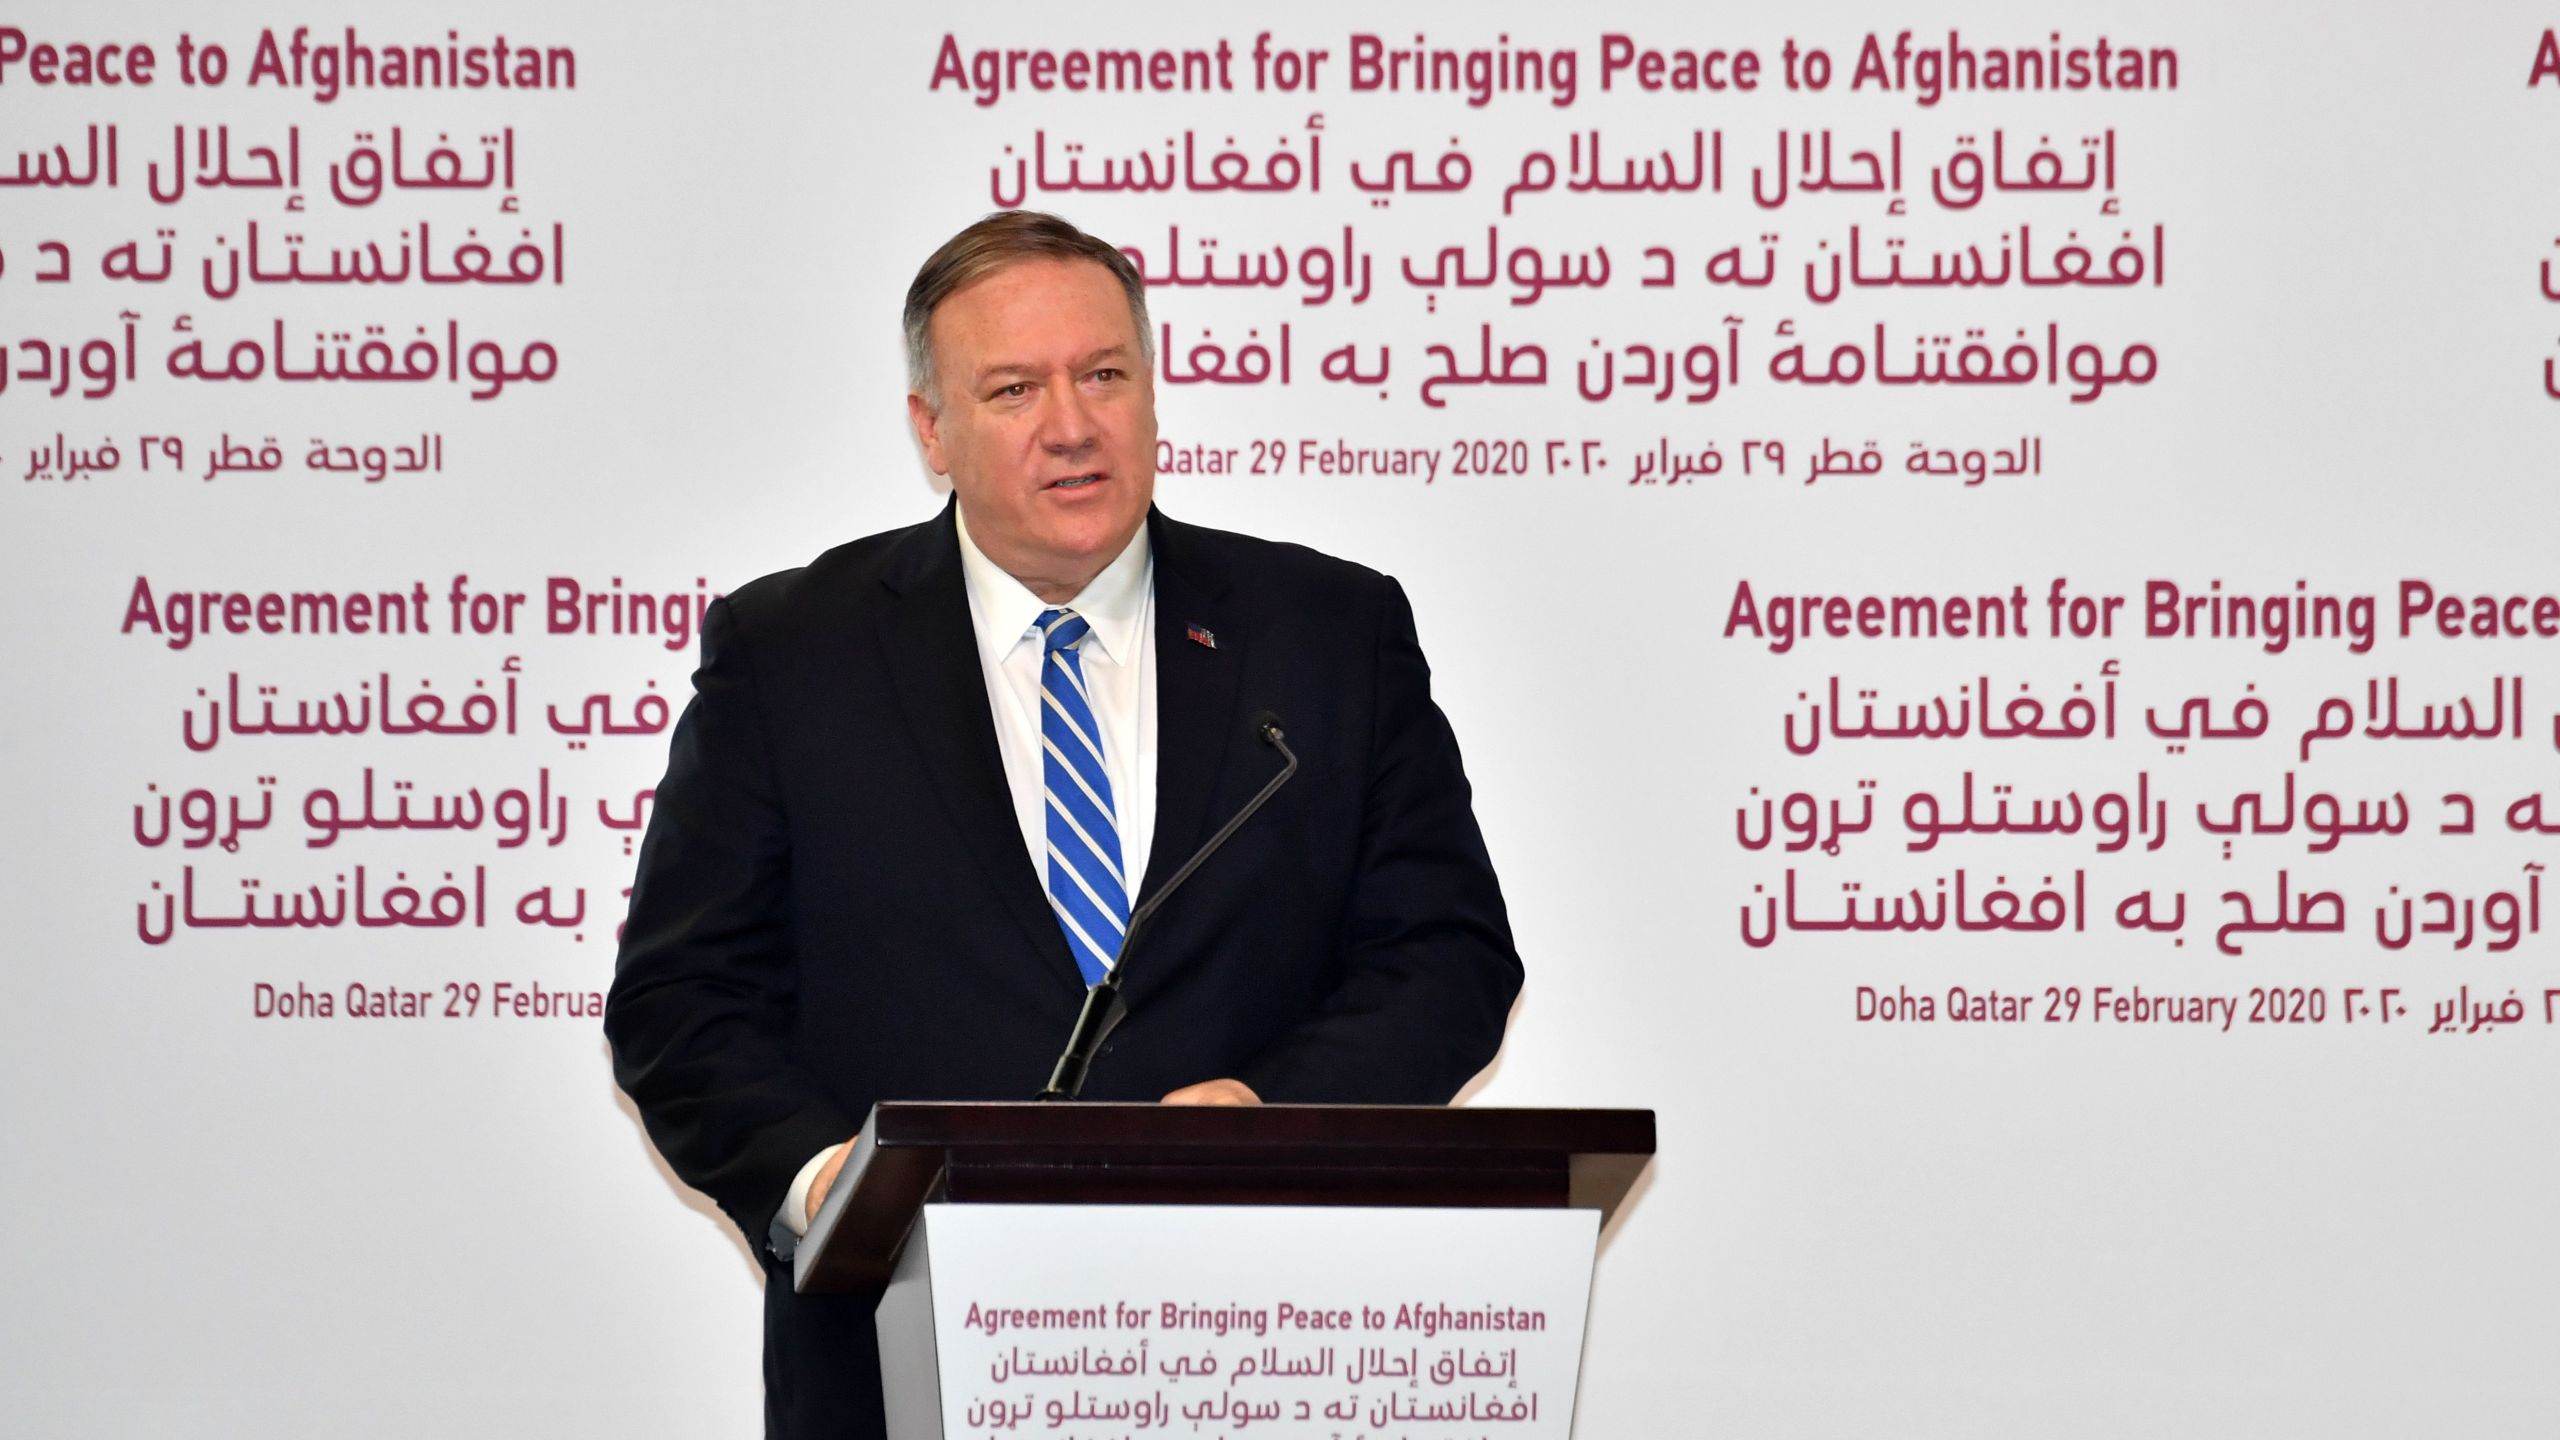 U.S. Secretary of State Mike Pompeo speaks at a signing ceremony of the U.S.-Taliban agreement in the Qatari capital Doha on Feb. 29, 2020. - (GIUSEPPE CACACE/AFP via Getty Images)